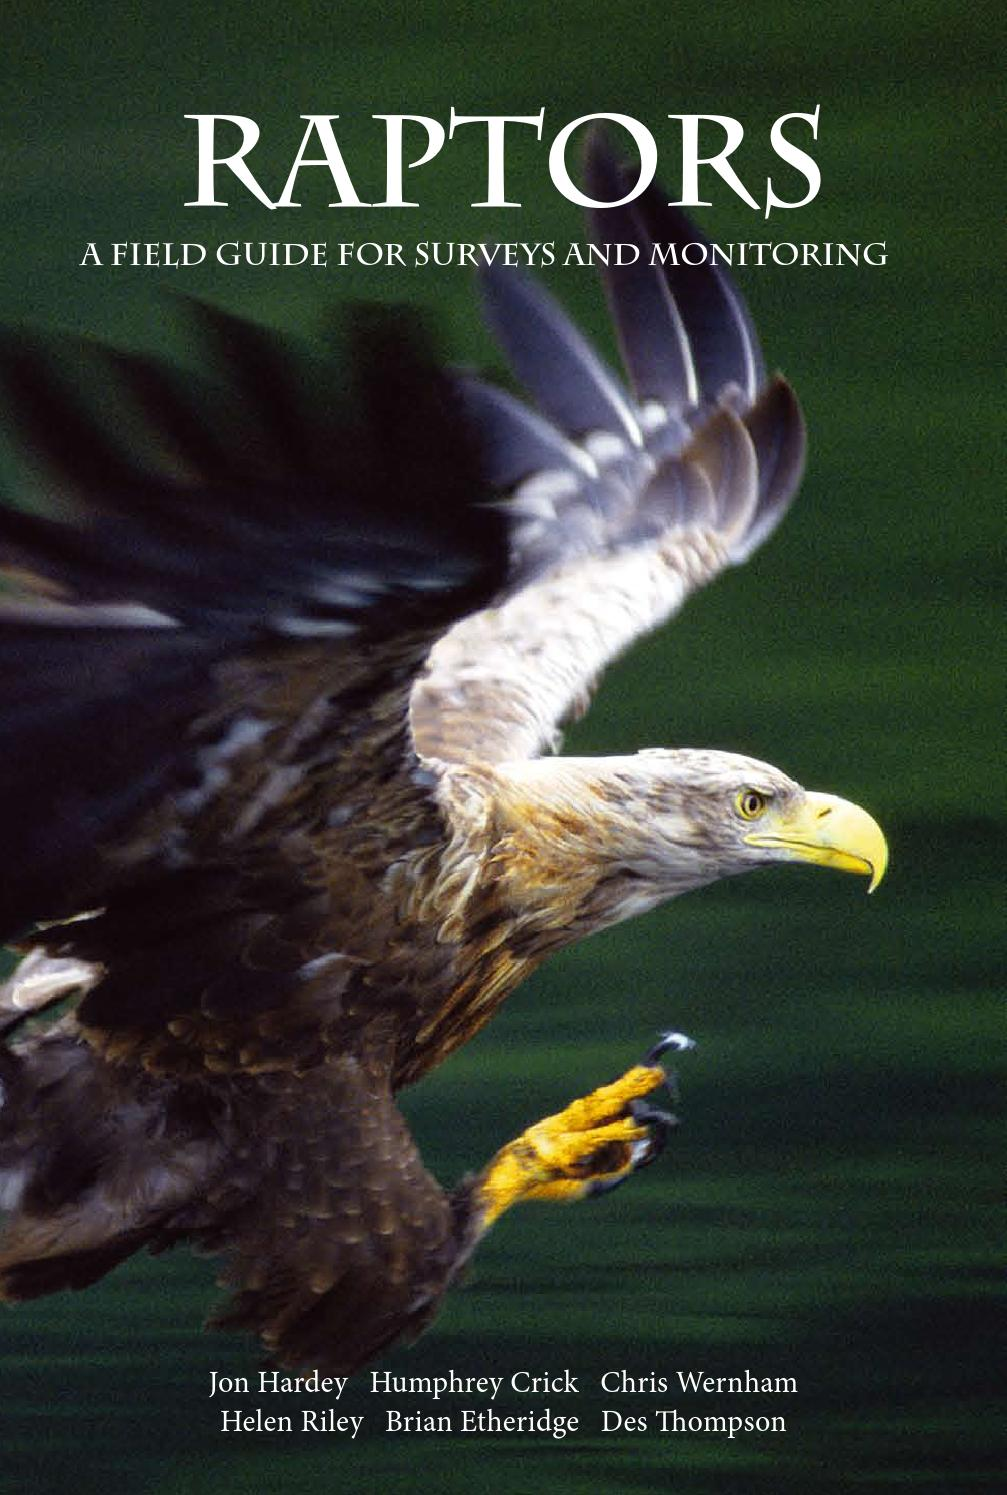 A Manual for Wildlife Radio Tagging, Second Edition